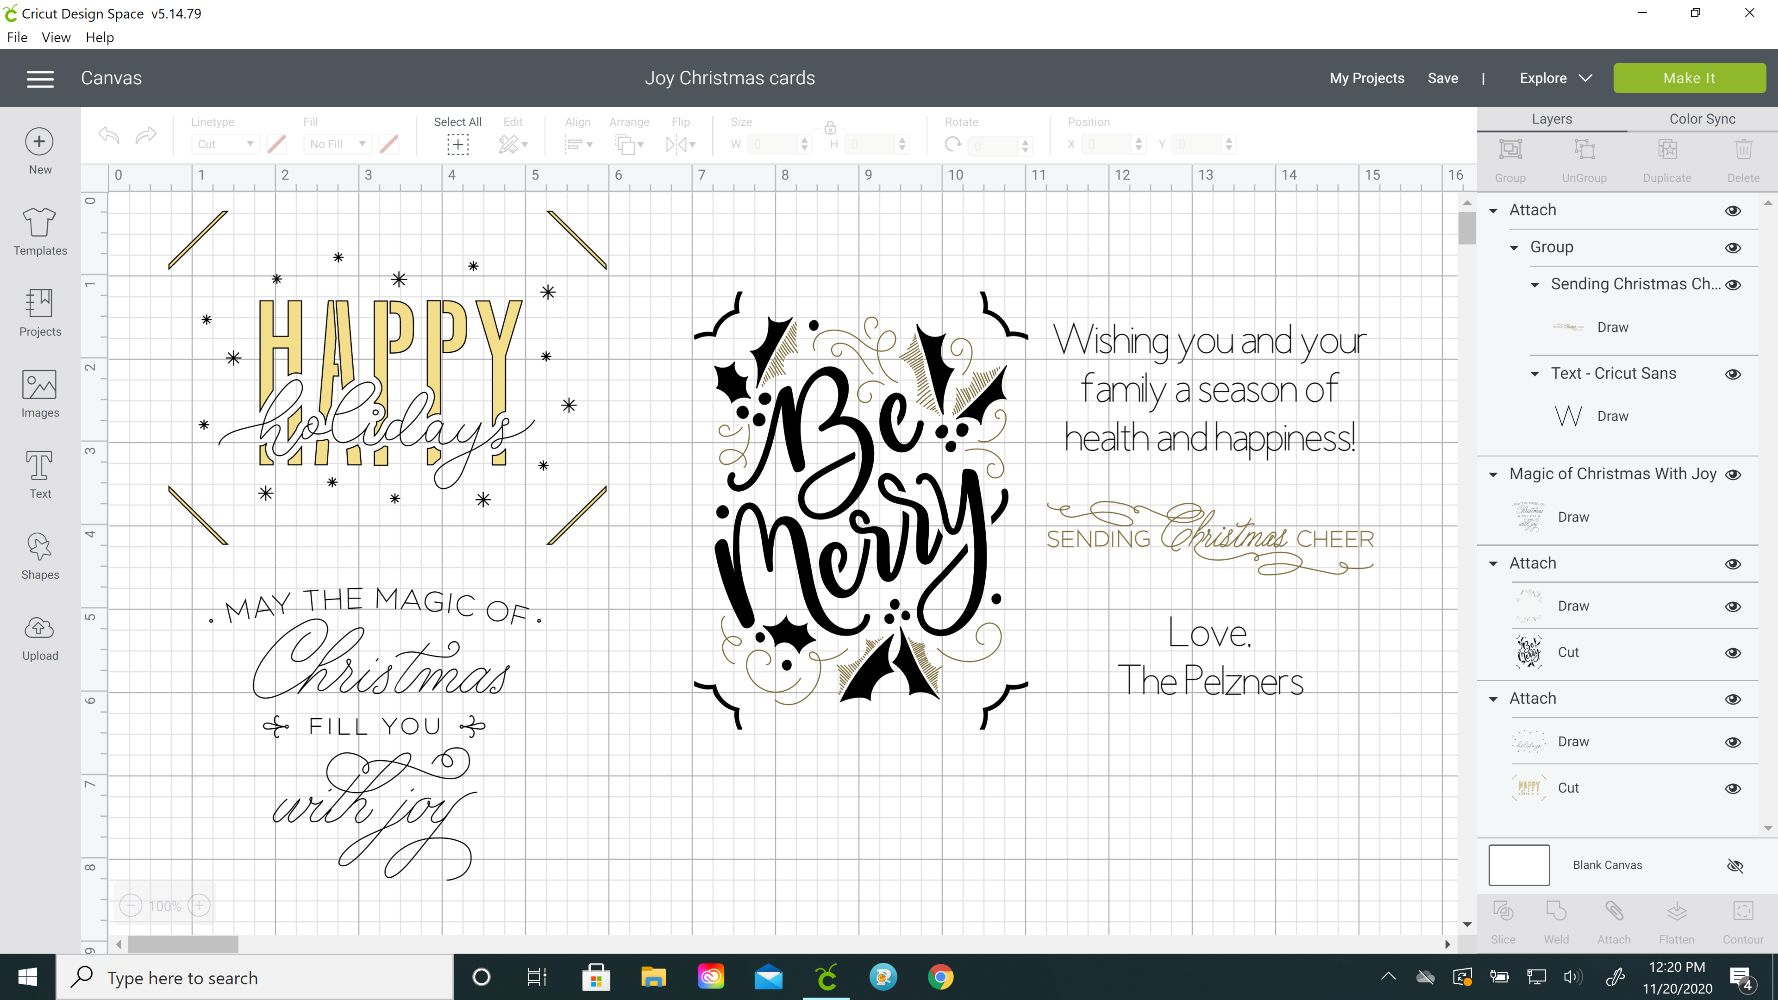 christmas cards design space